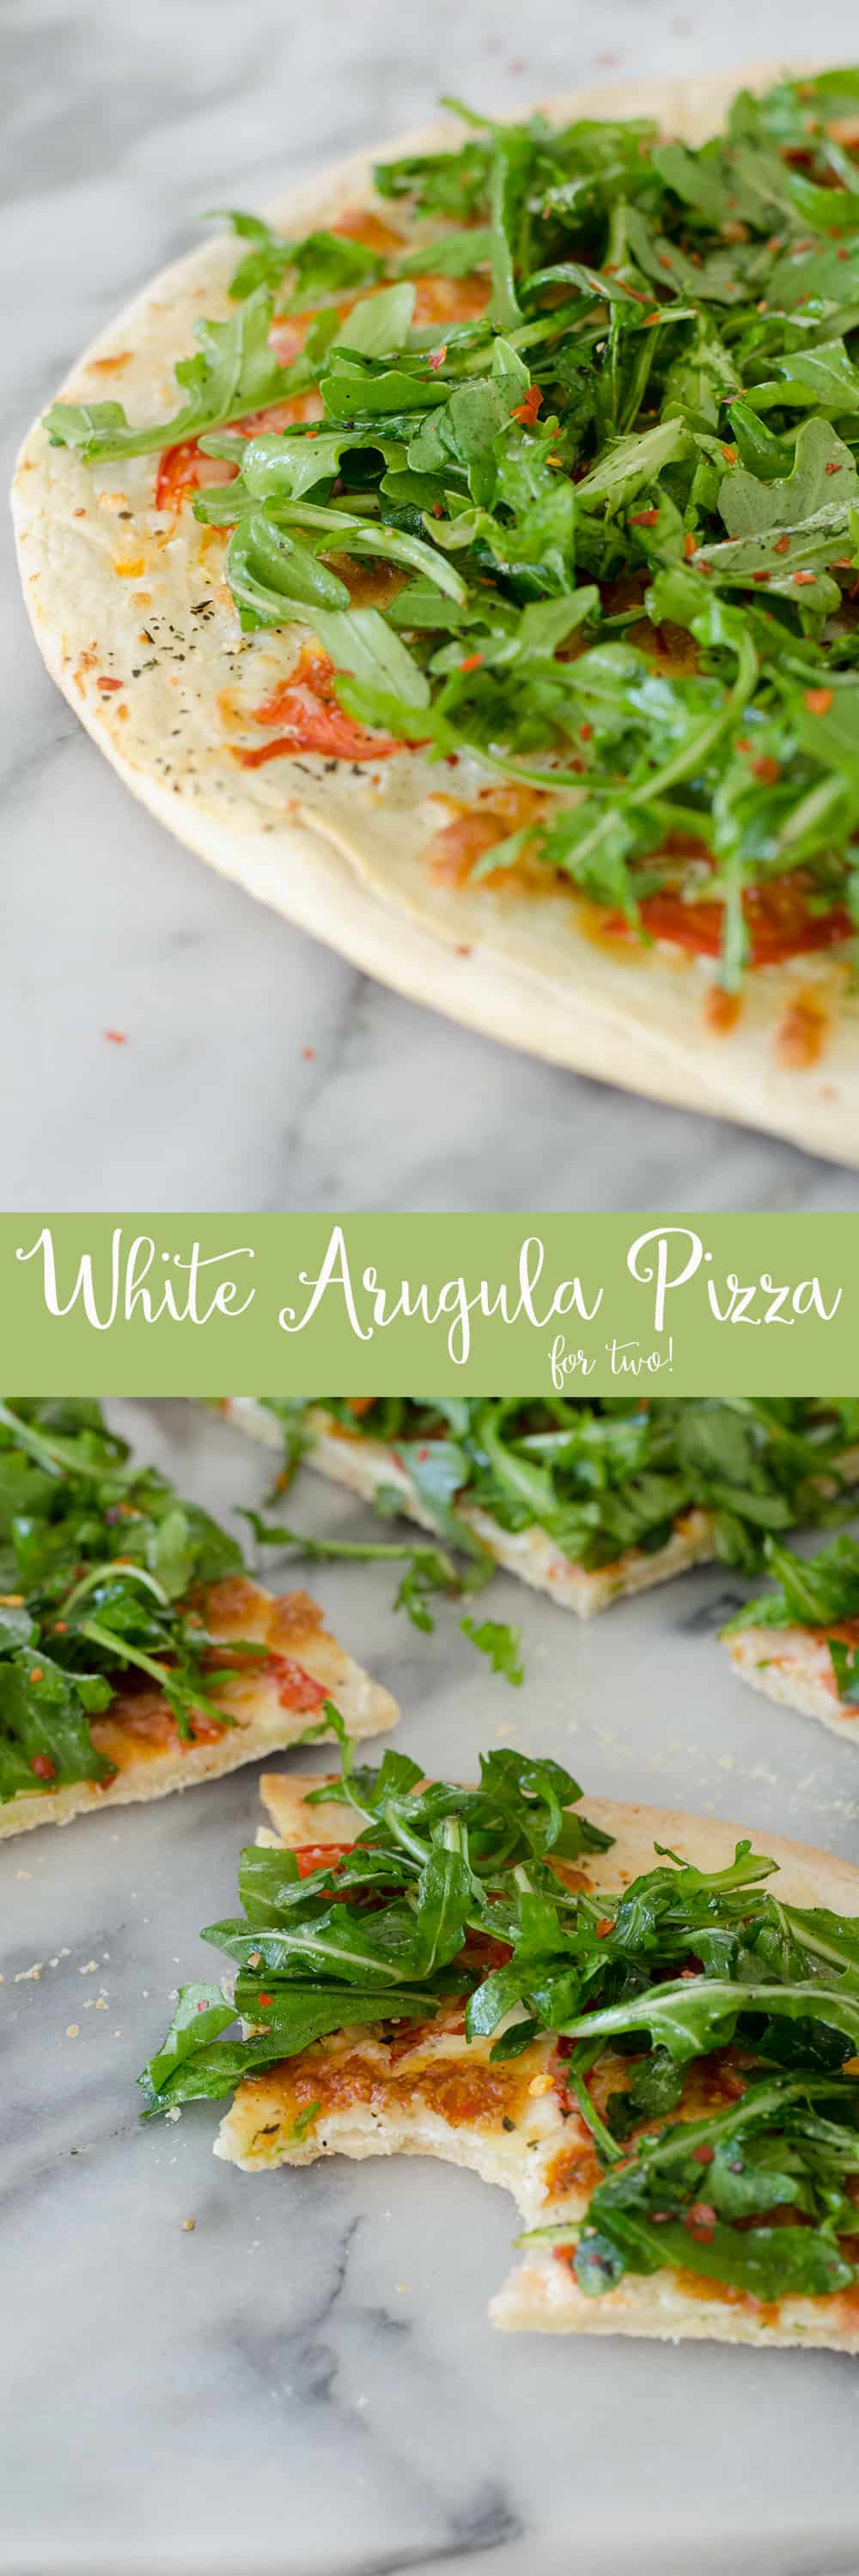 White Pizza with Arugula for Two! This pizza is ready in just 30 minutes and serves 2. White Pizza with spicy arugula salad. | www.delishknowledge.com